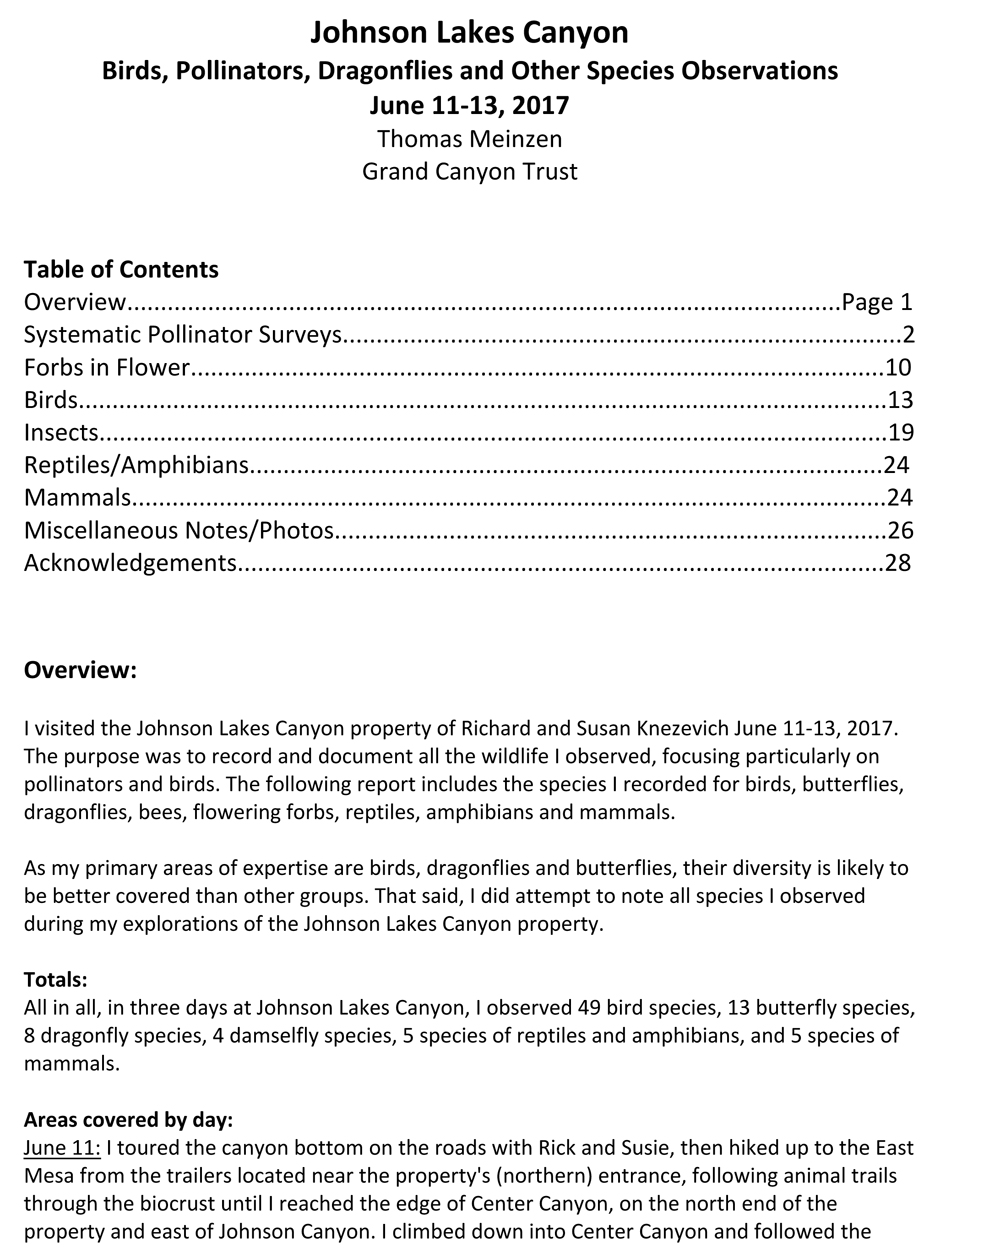 Page 1 of the report, click to download.